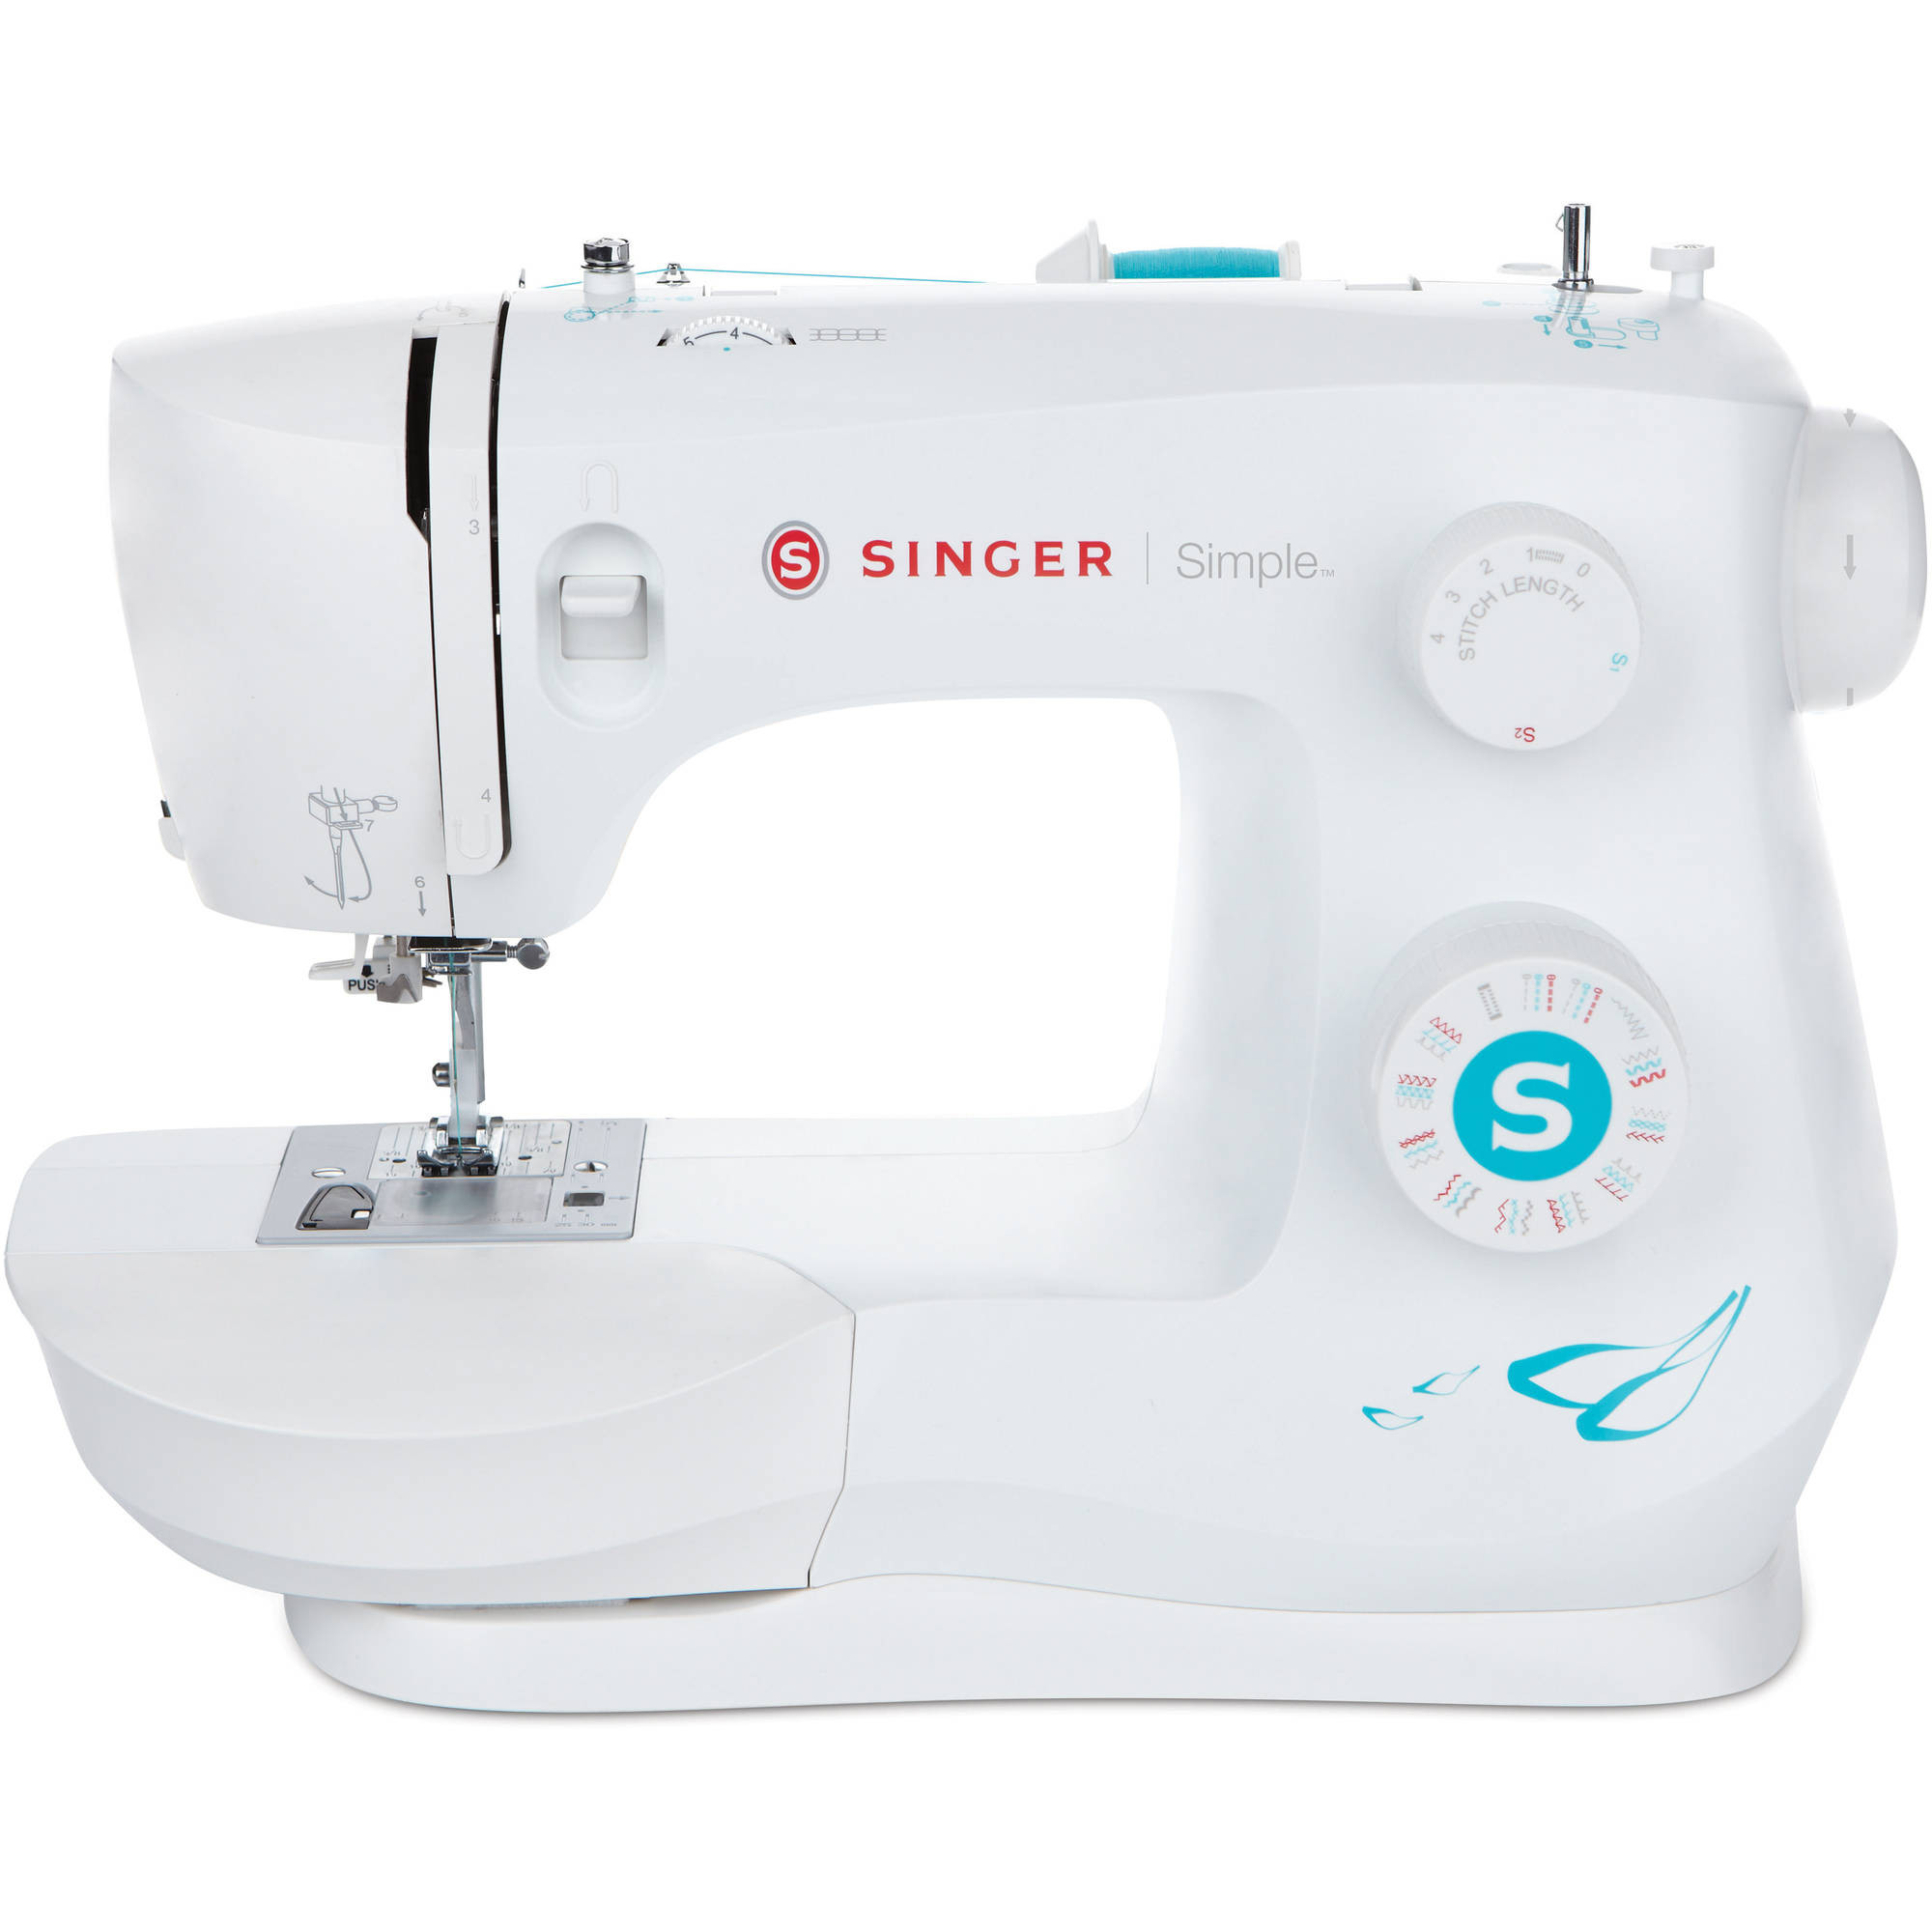 Singer 3337 Simple 29 Stitch Sewing Machine with Sew Easy